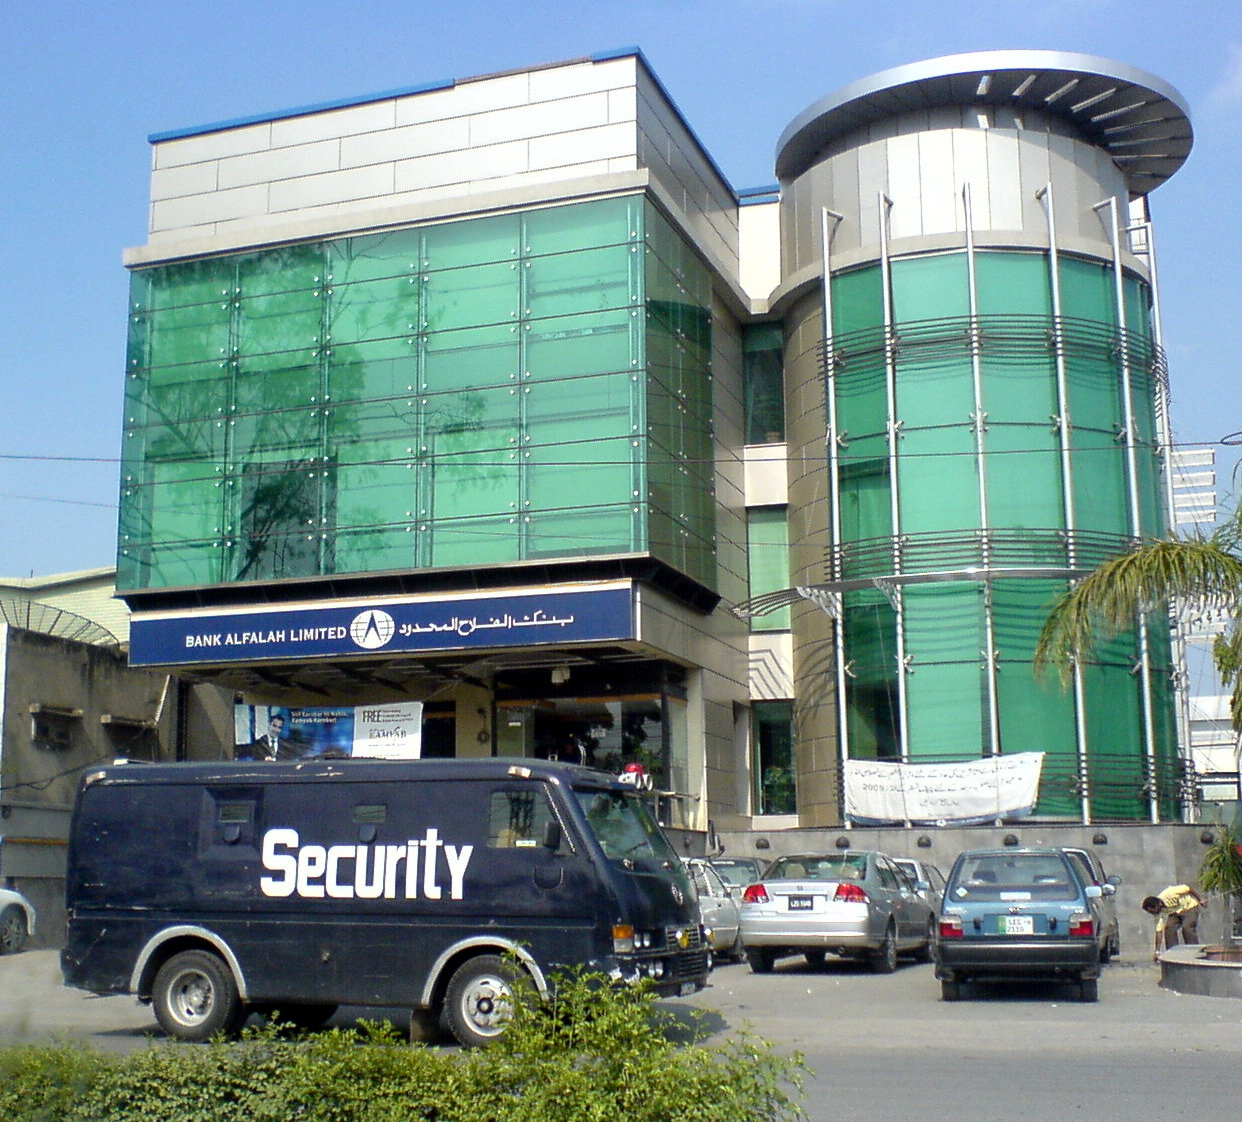 pakistan and lahore bank branch Find swift code / bic (bank identifier code) of bank branches in pakistan along with address, branch code and other details associated with the bank.